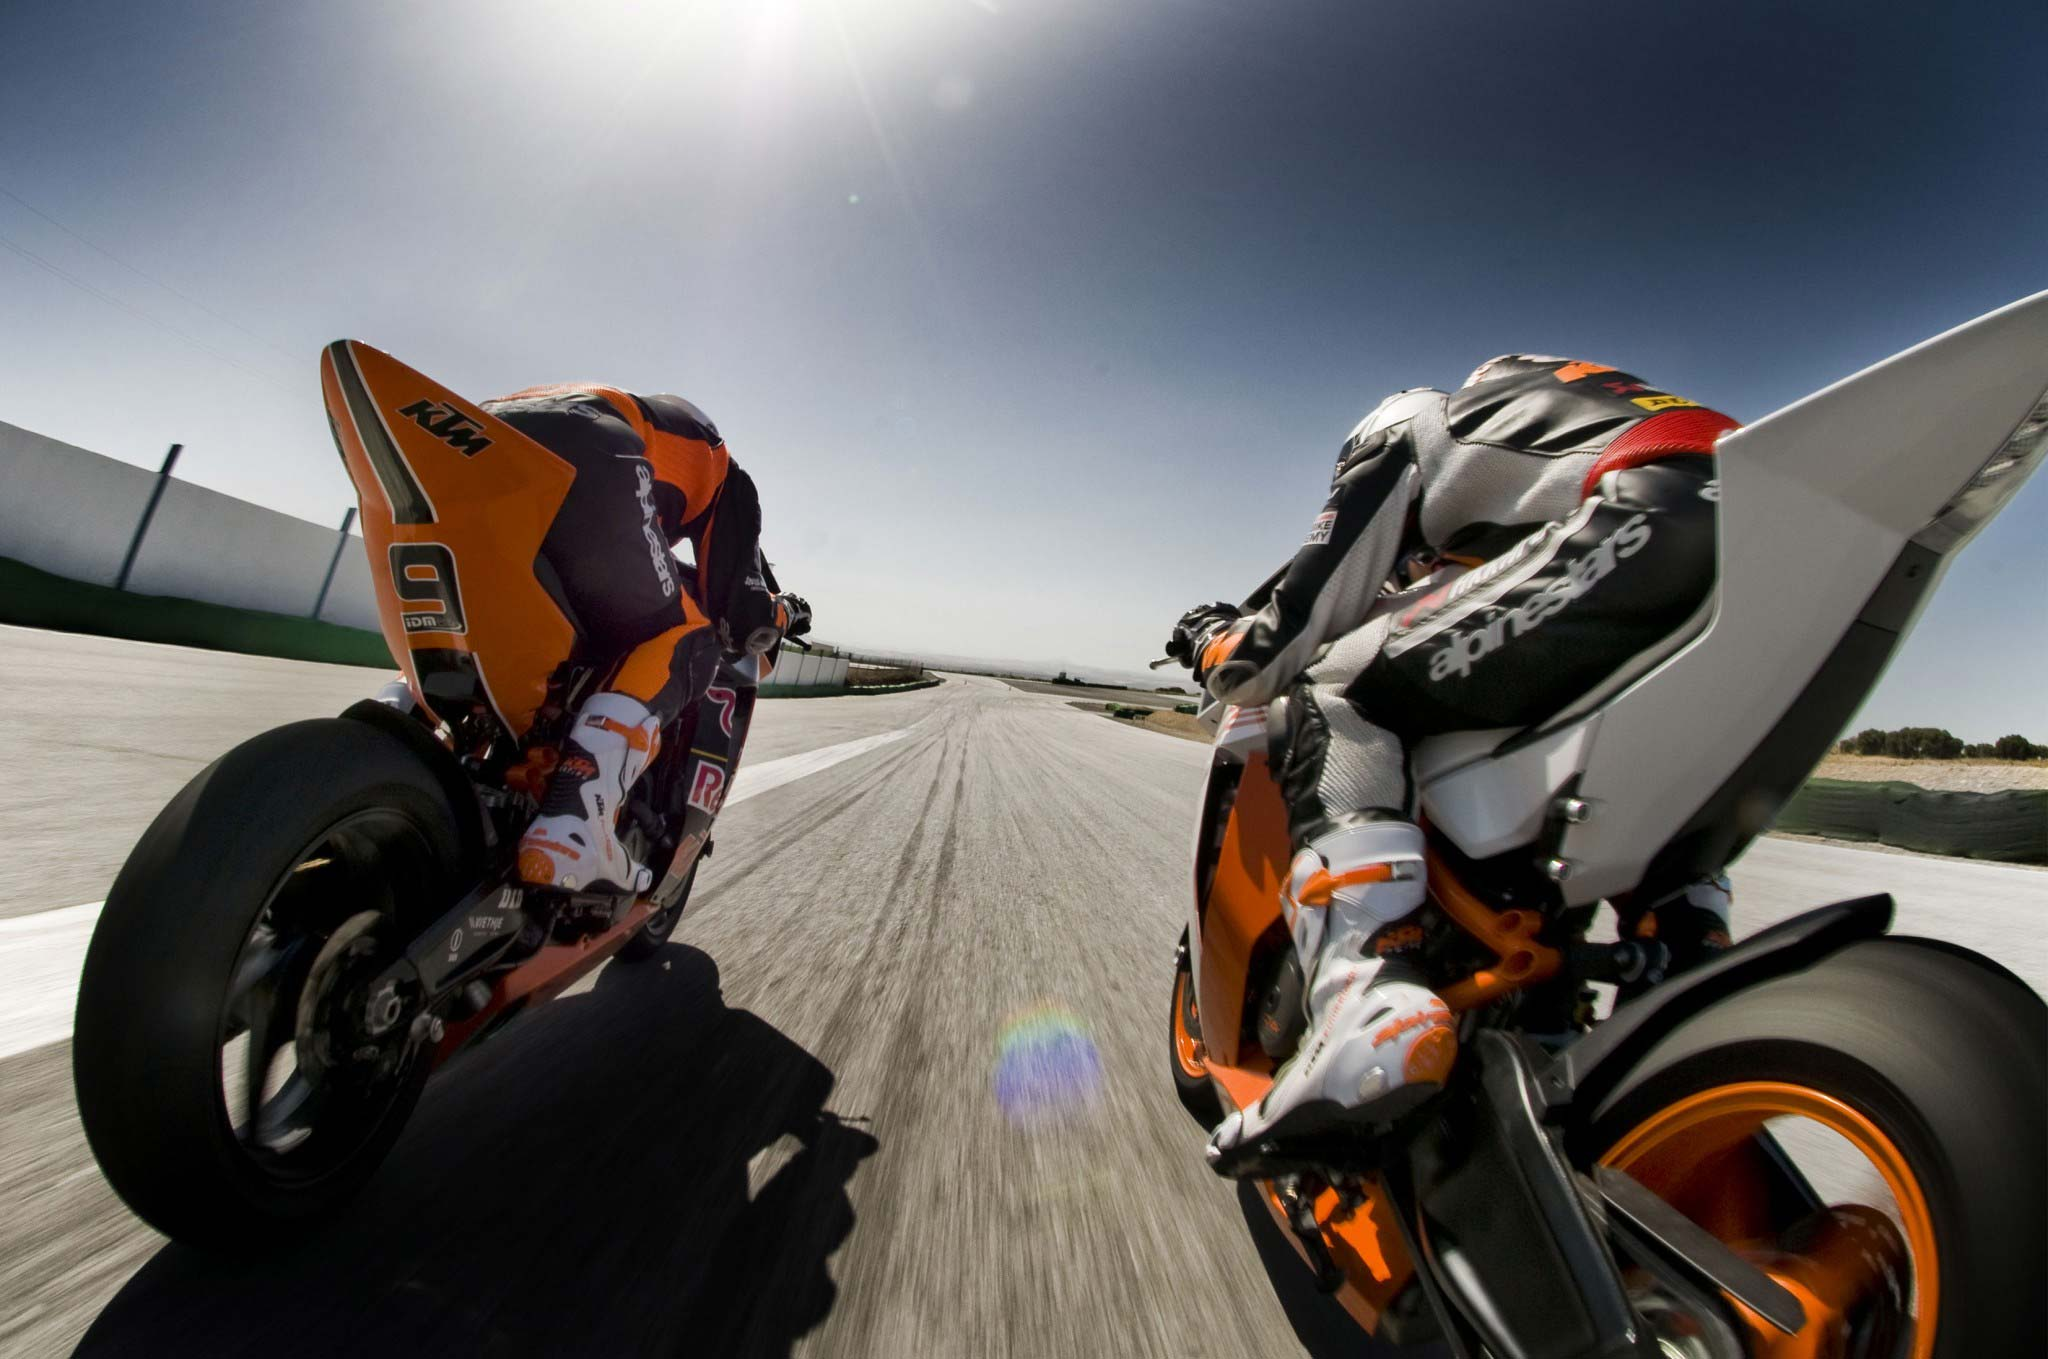 2048x1359 - KTM RC8 Wallpapers 25